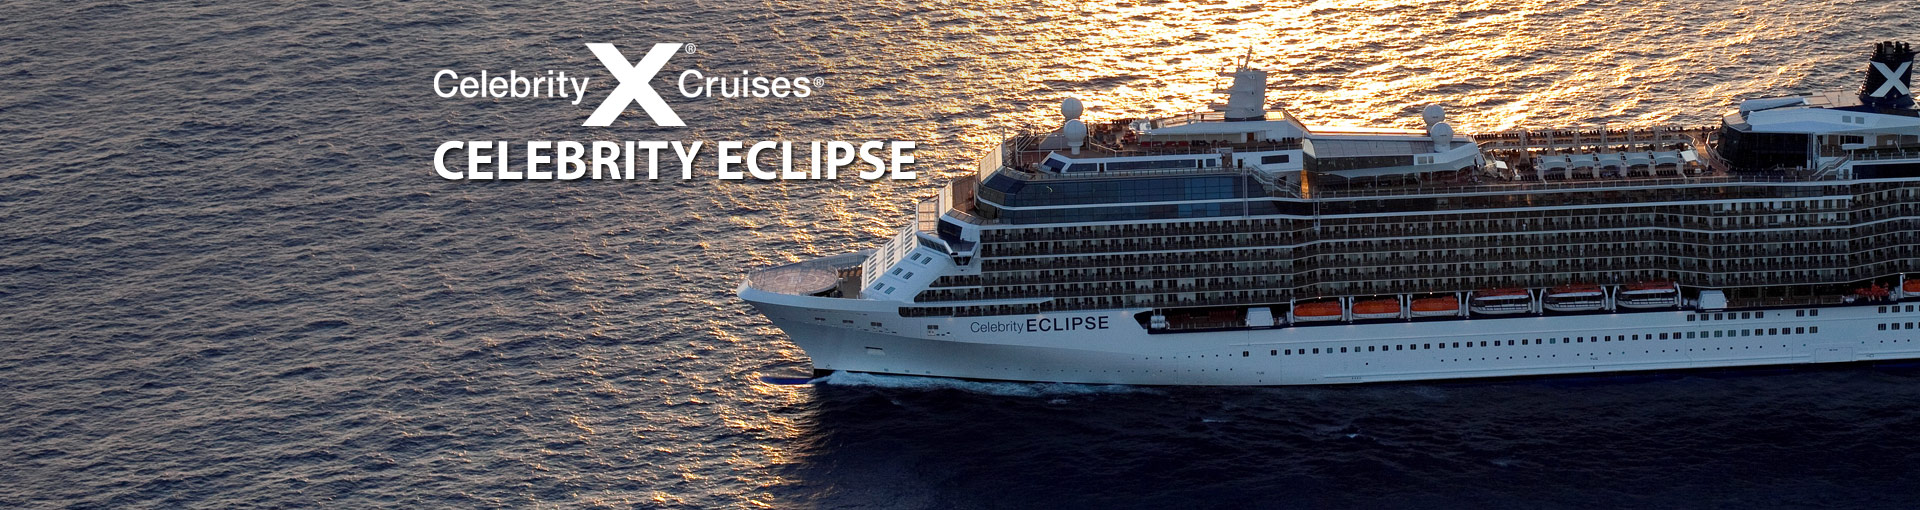 Celebrity Eclipse Cruise Ship And Celebrity Eclipse - Celebrity eclipse cruise ship itinerary